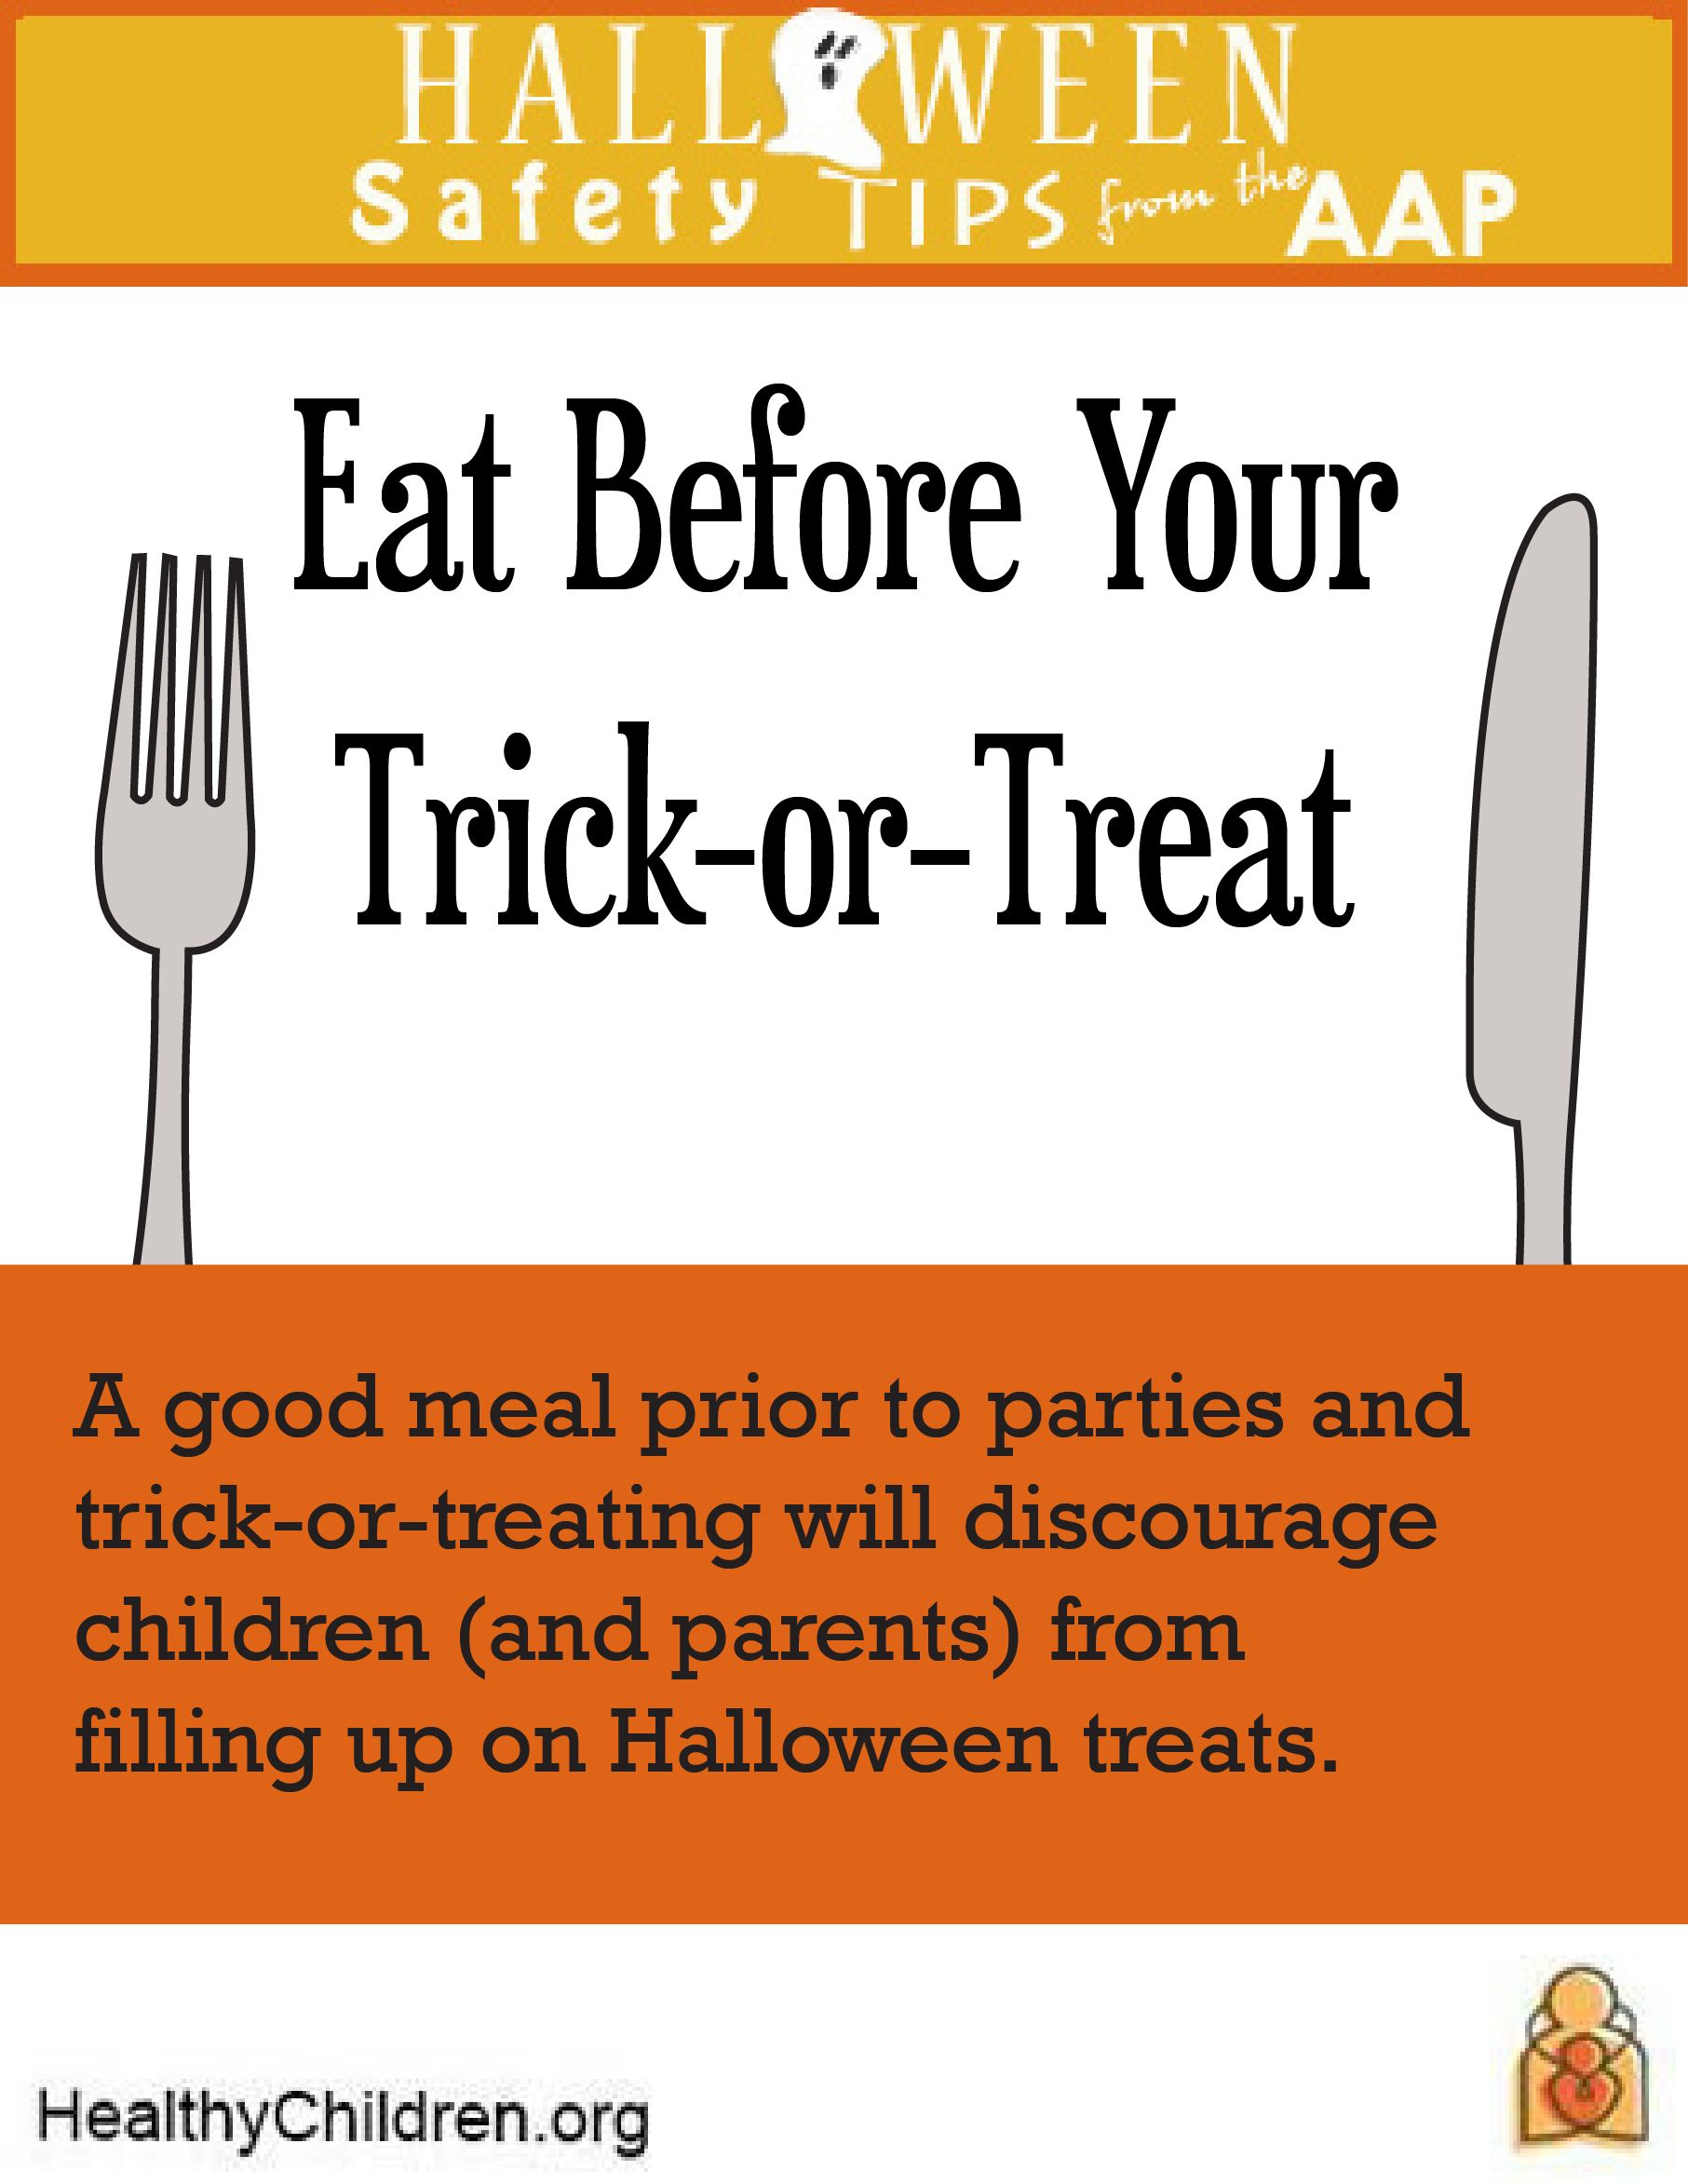 Halloween Safety Tips from the American Academy of